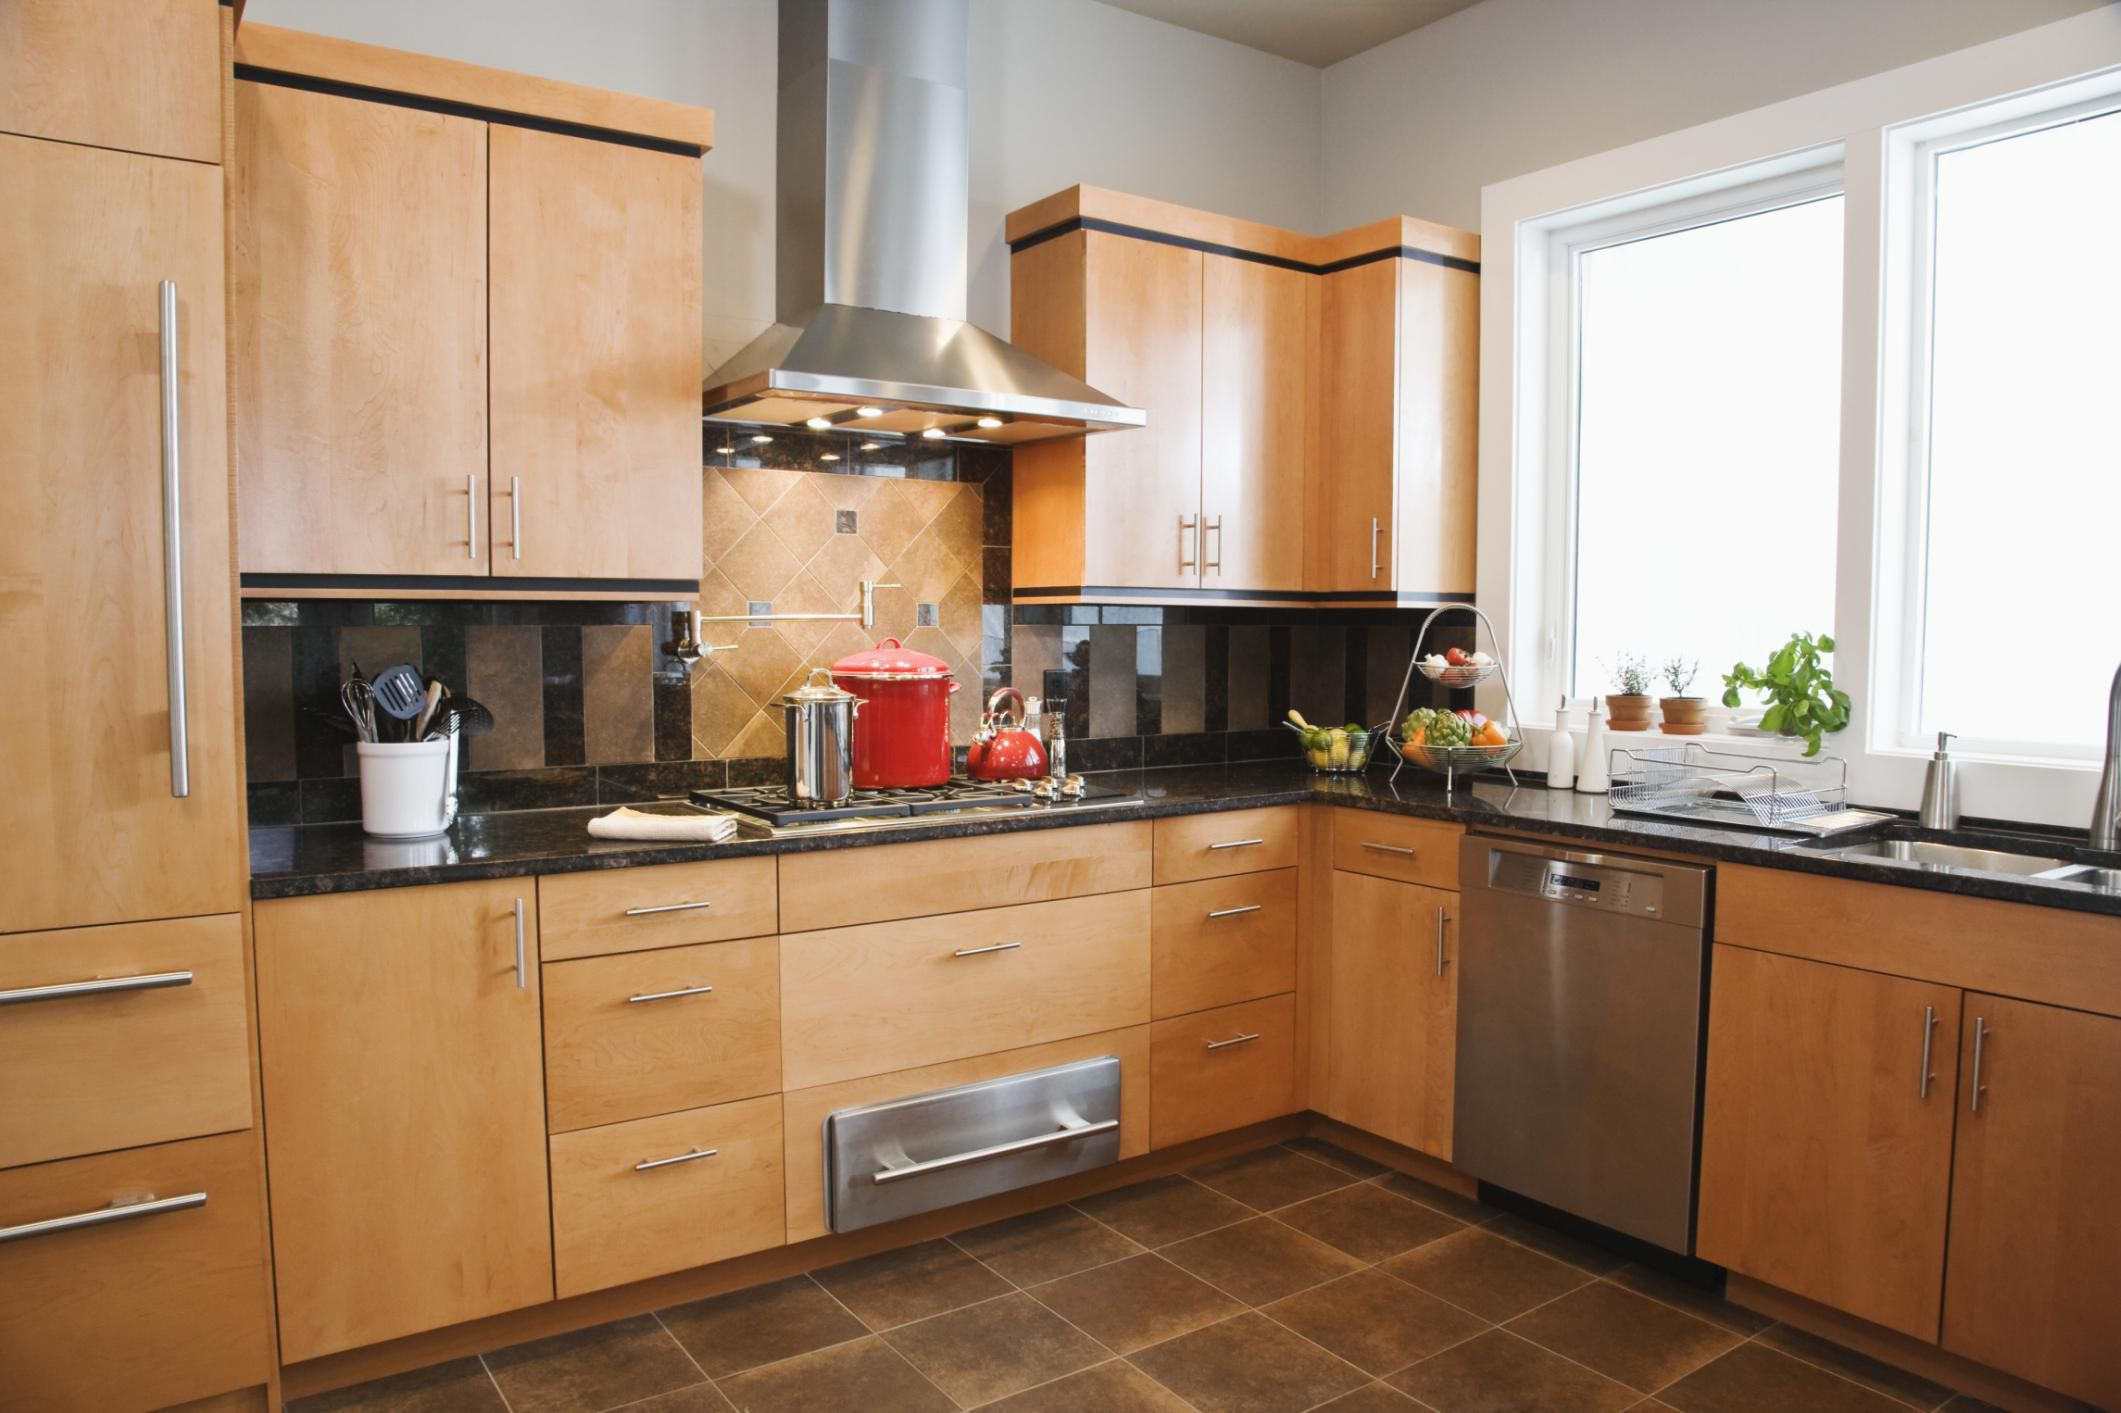 Optimal Kitchen Upper Cabinet Height